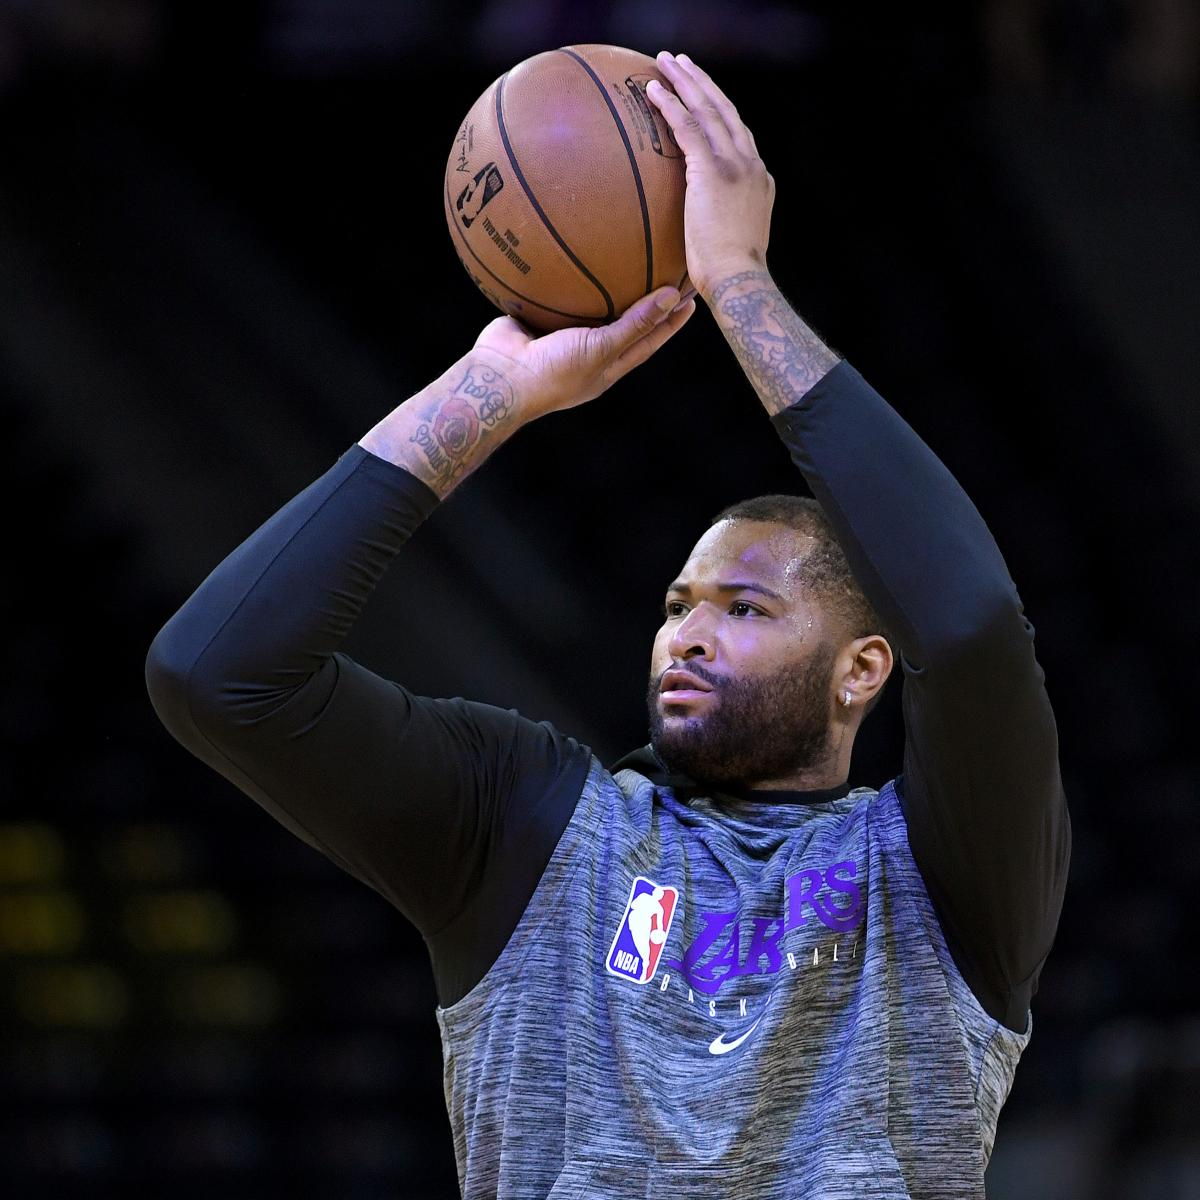 Lakers News: DeMarcus Cousins Waived as Markieff Morris Signs Contract